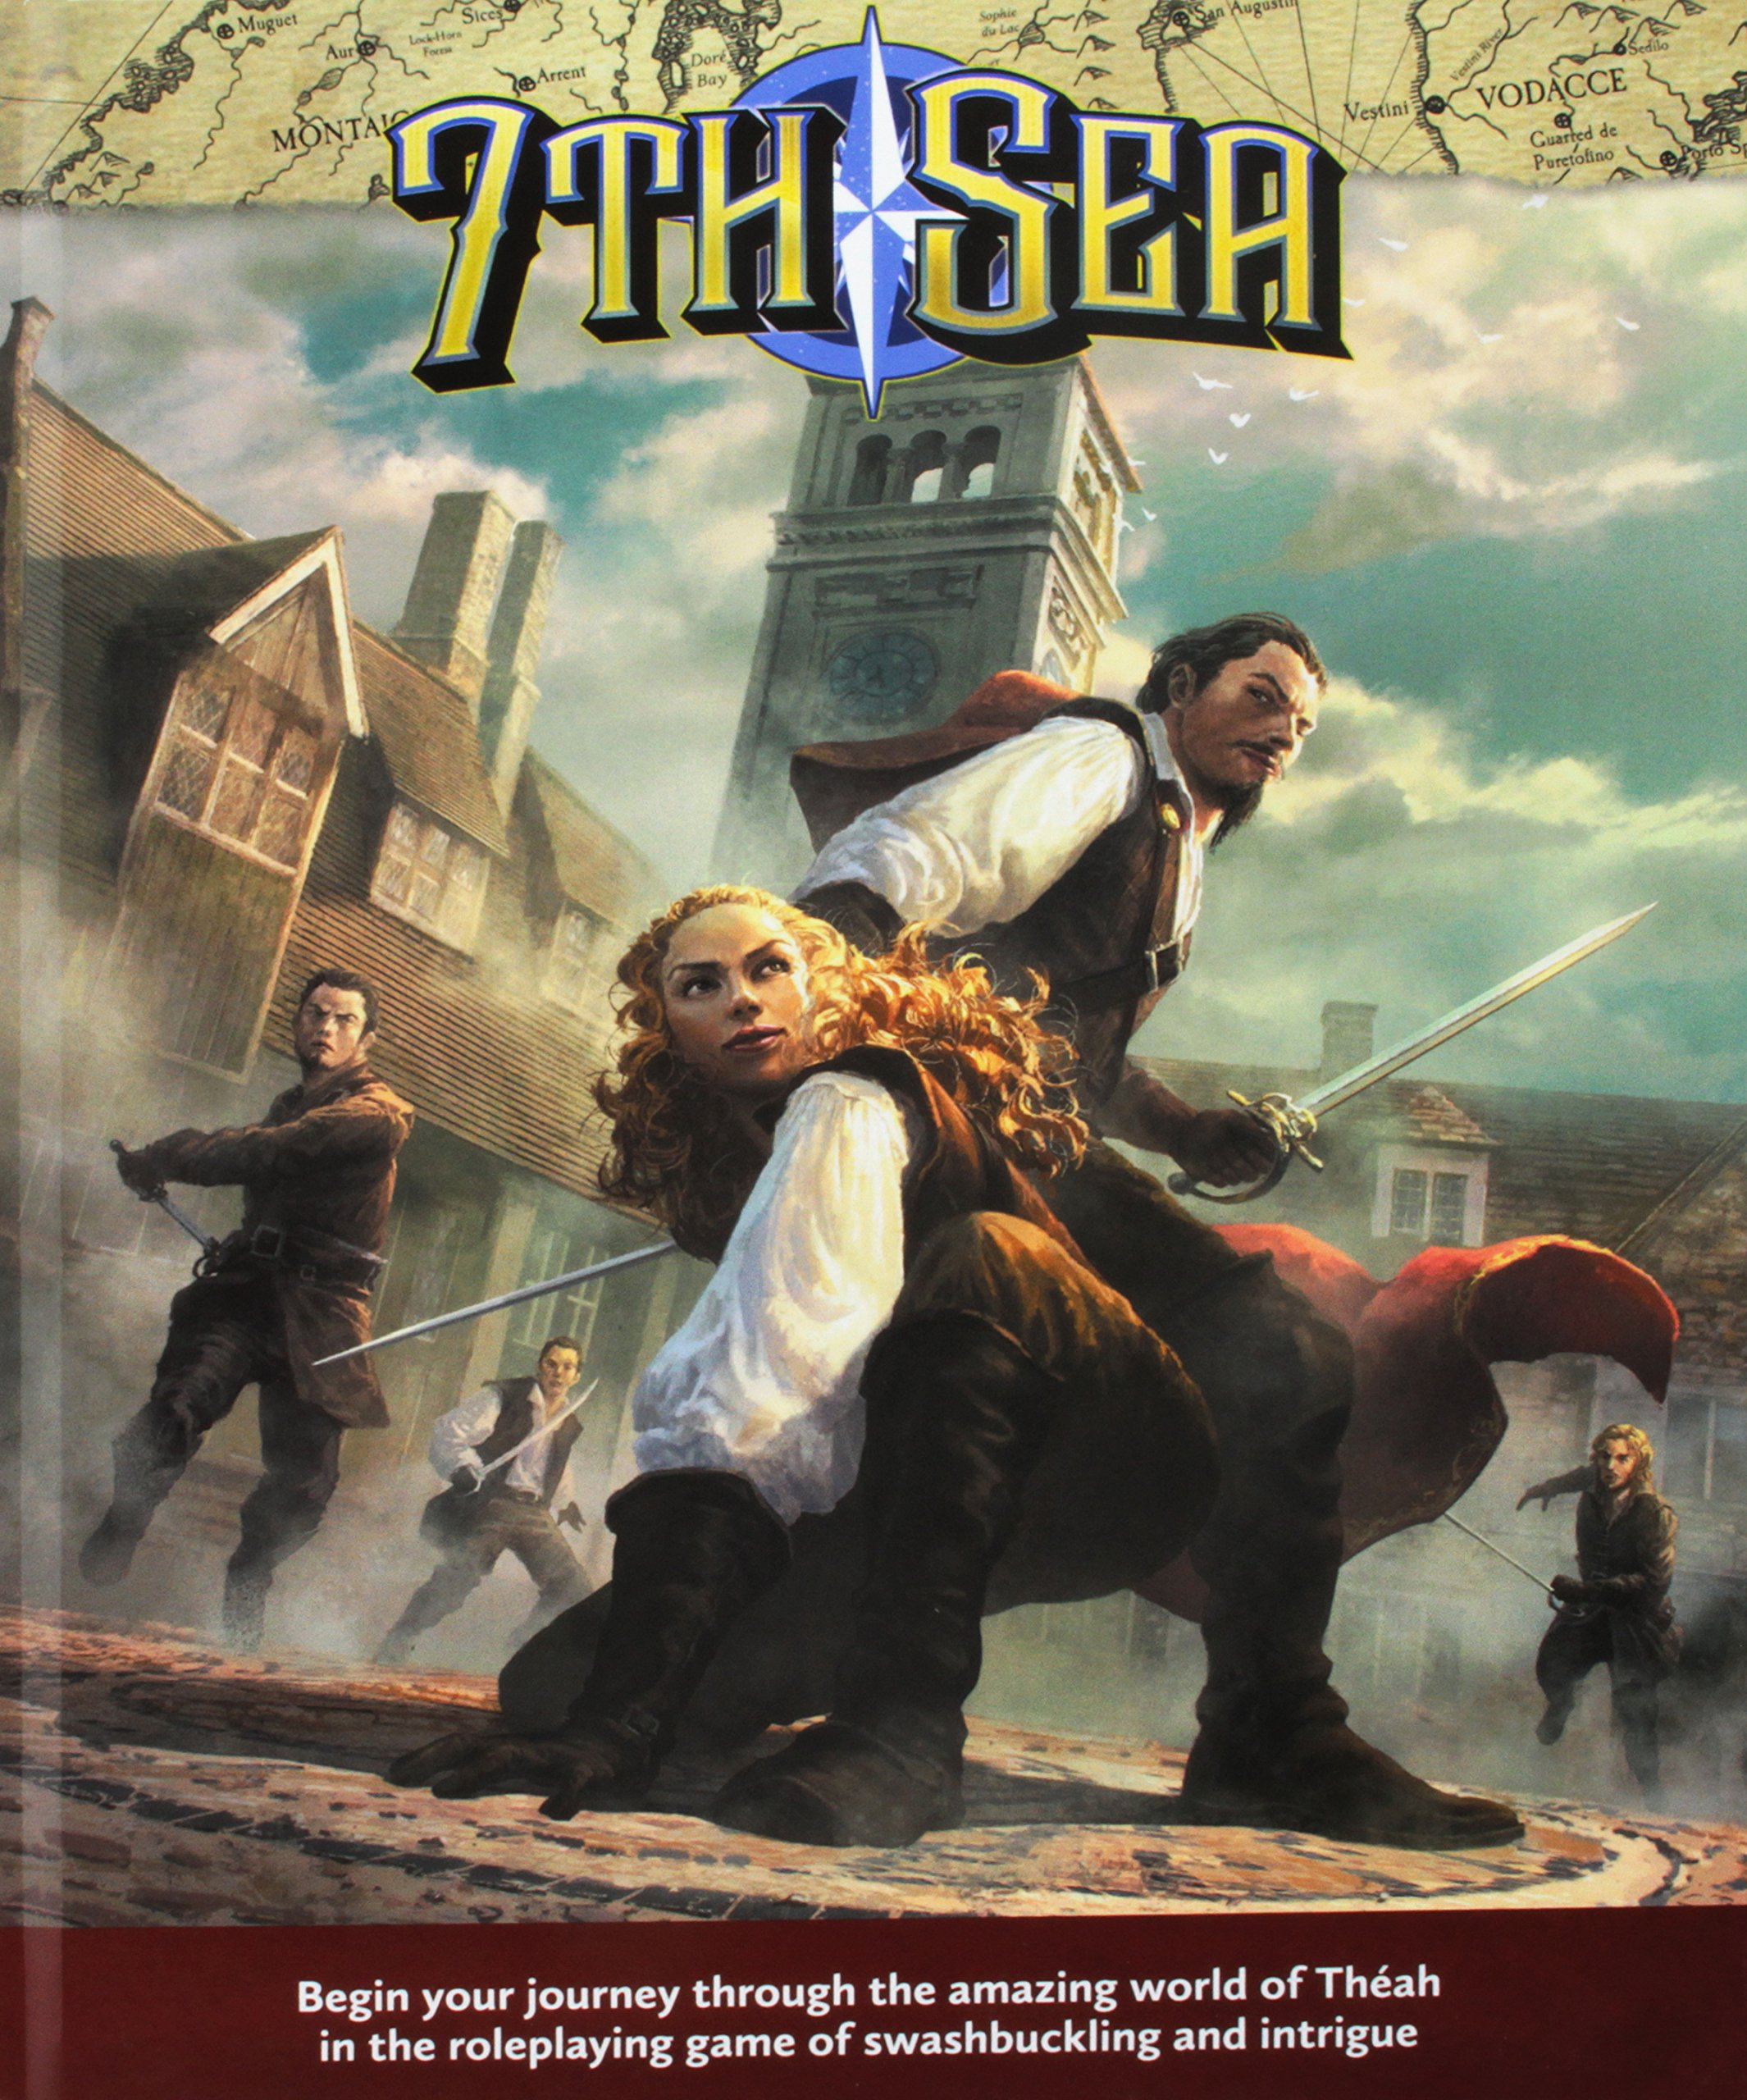 7th Sea: Swashbuckling Roleplaying